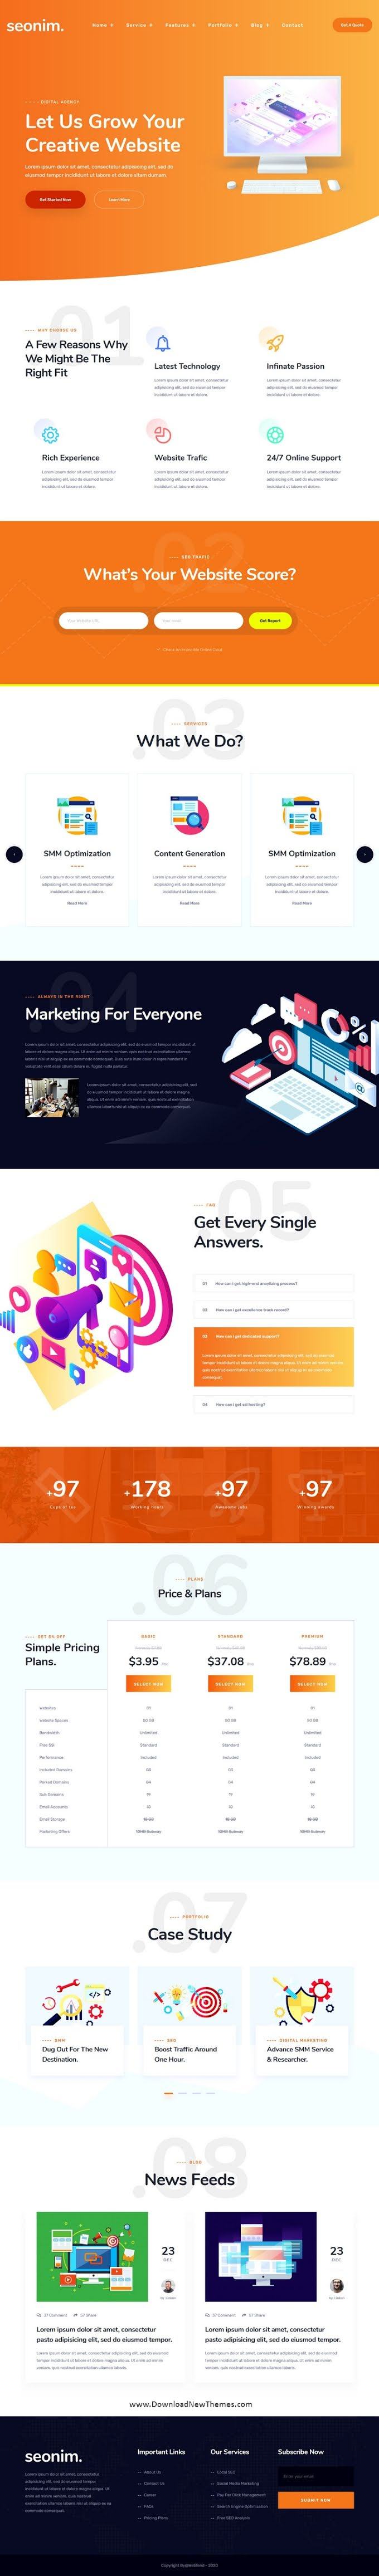 SEO & Digital Marketing Agency Template